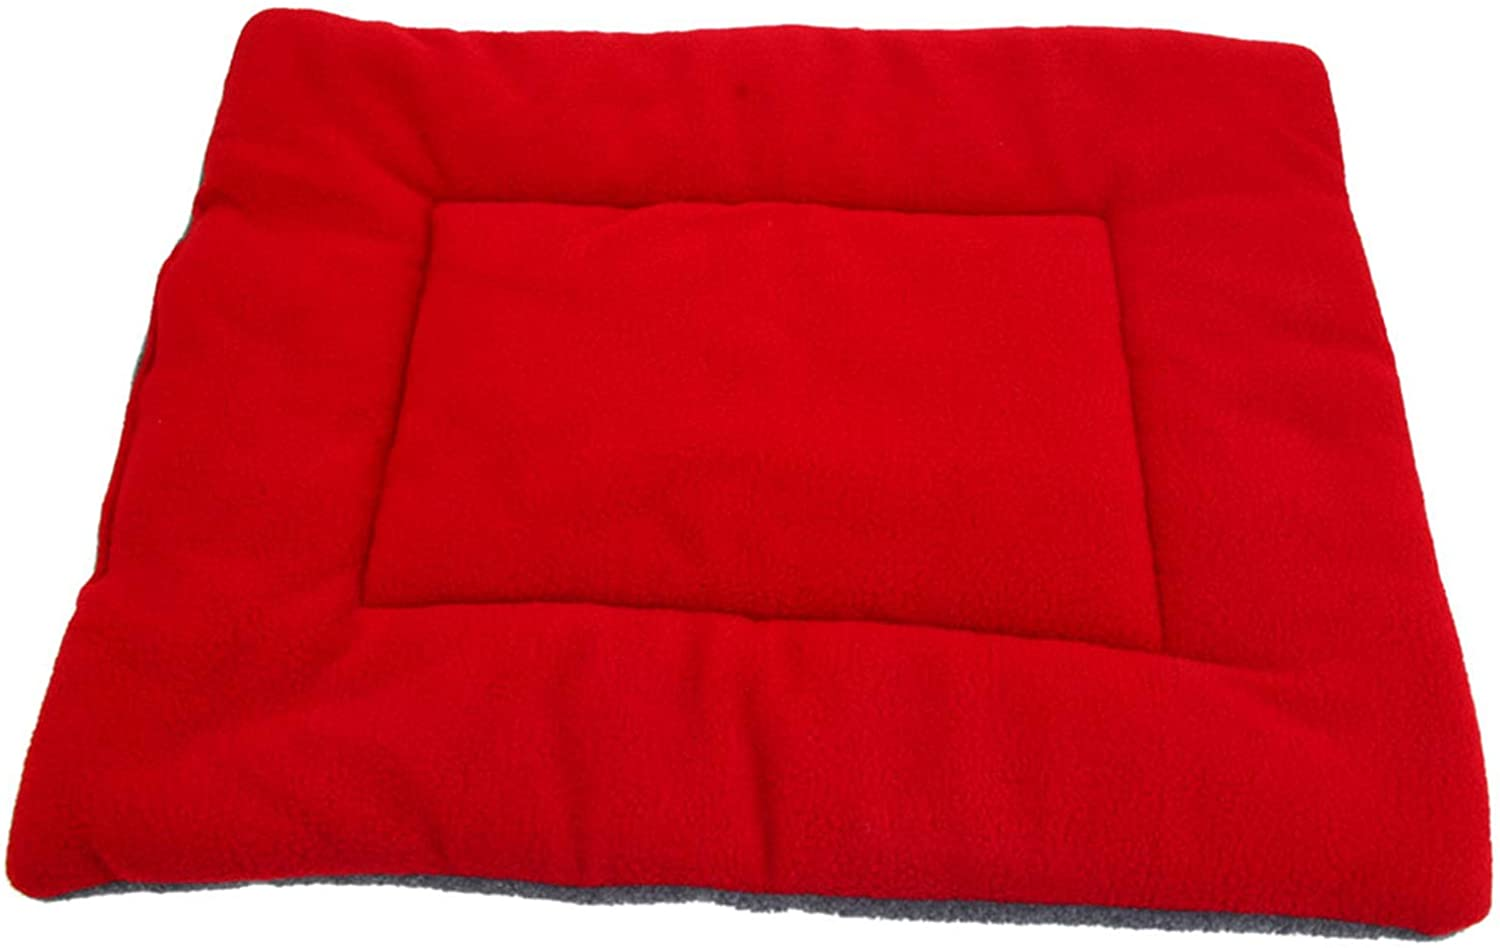 RBtoday Washable Soft Comfortable Silk Wadding Bed Pad Mat Cushion for Pet - Improved Sleep for Cats Medium Dogs